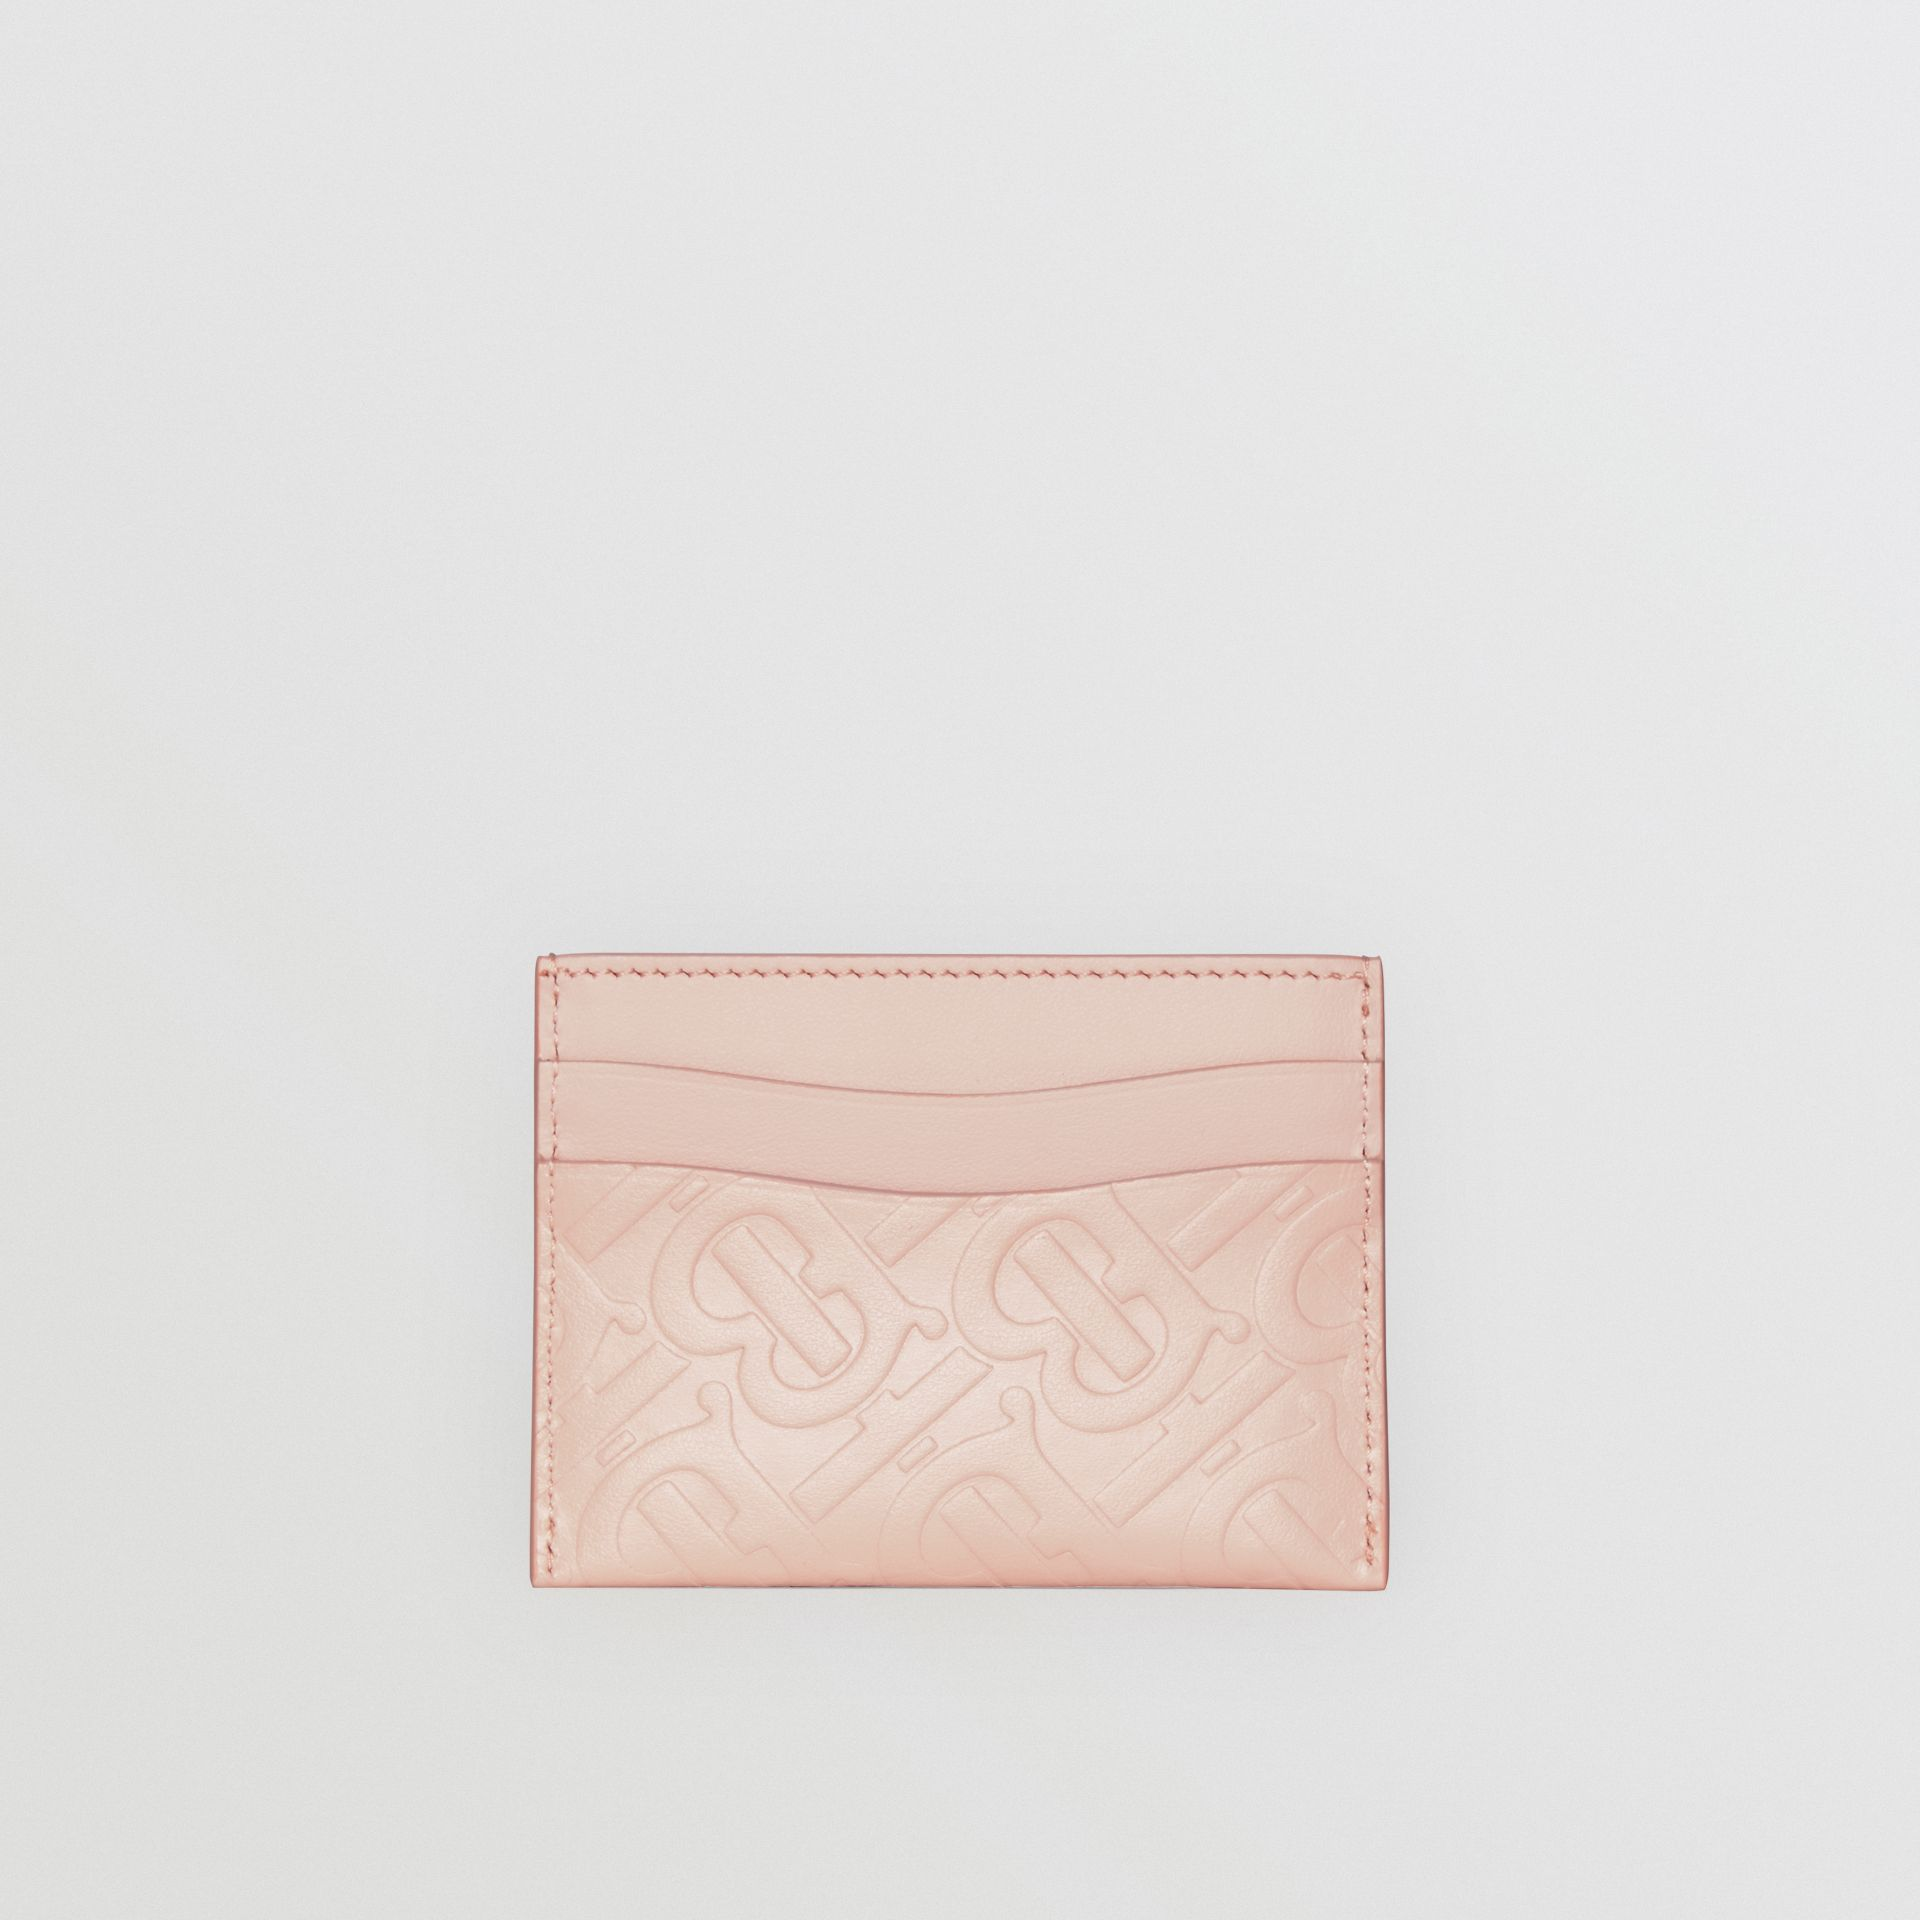 Monogram Leather Card Case in Rose Beige - Women | Burberry Canada - gallery image 4